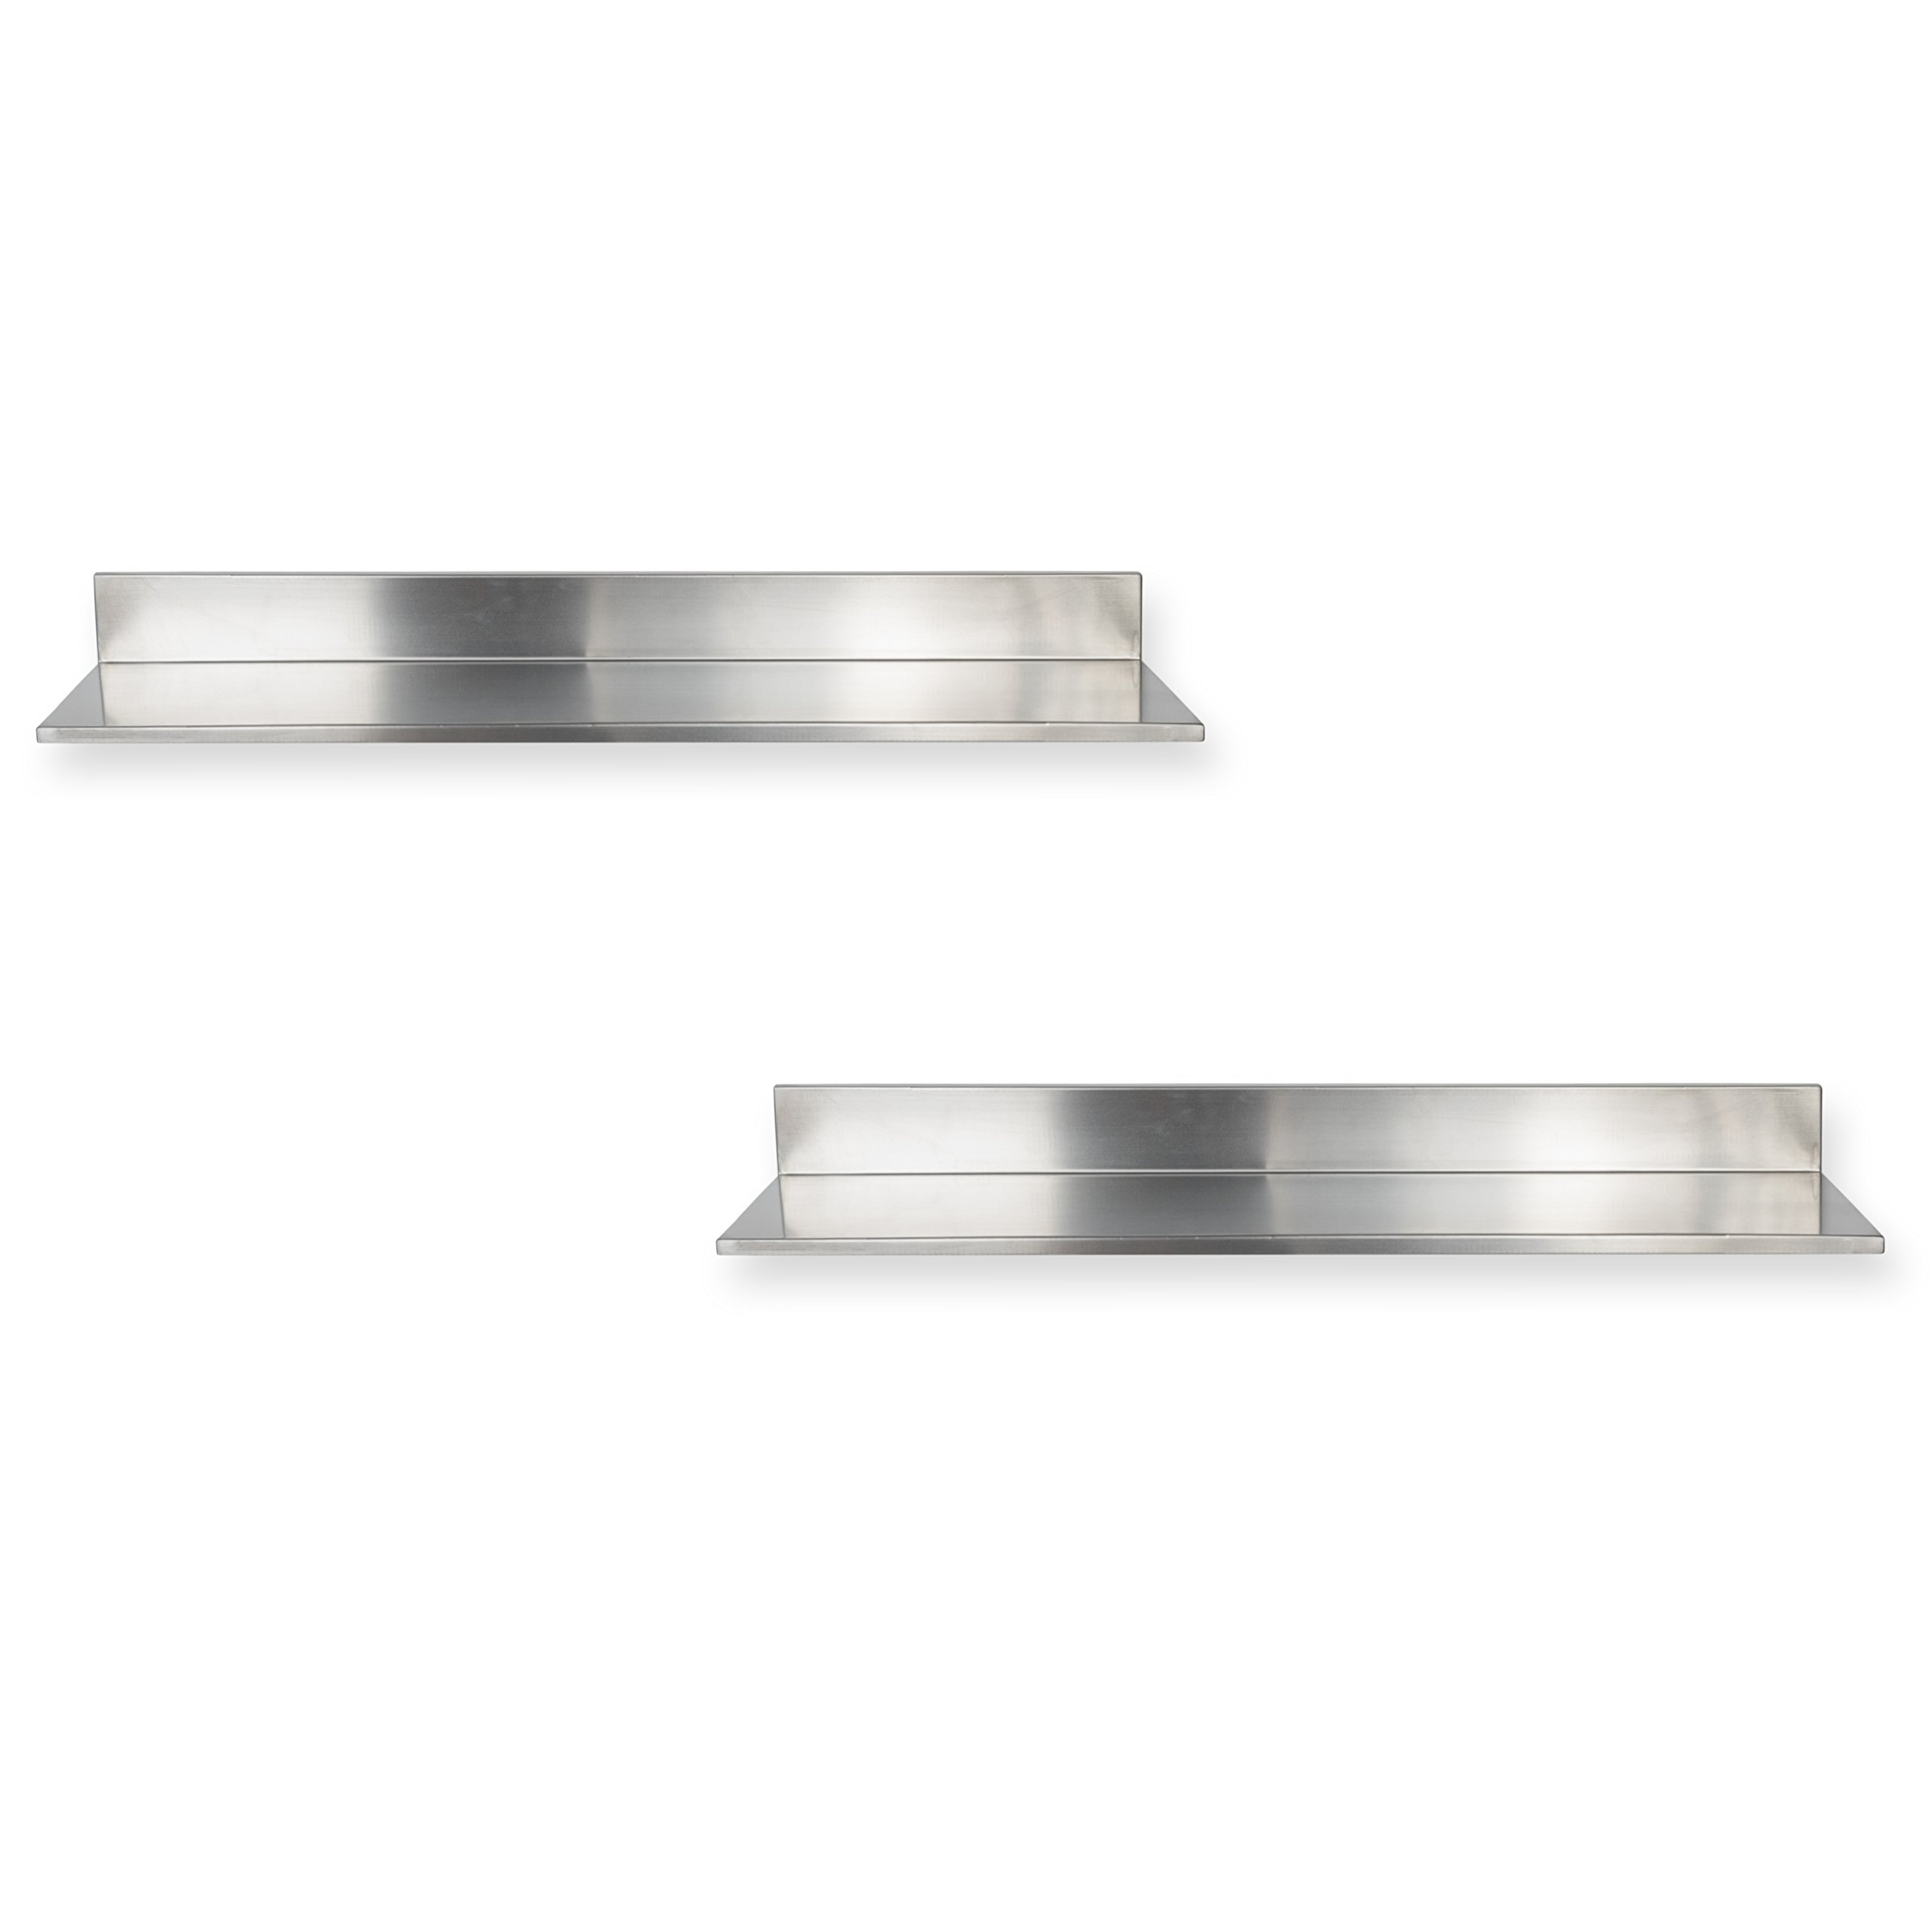 Stainless Steel Wall Mount Commercial and Home Use Premium Quality 30.50 Inches Kitchen Floating Shelves Set of 2 Silver by Fasthomegoods (Image #4)